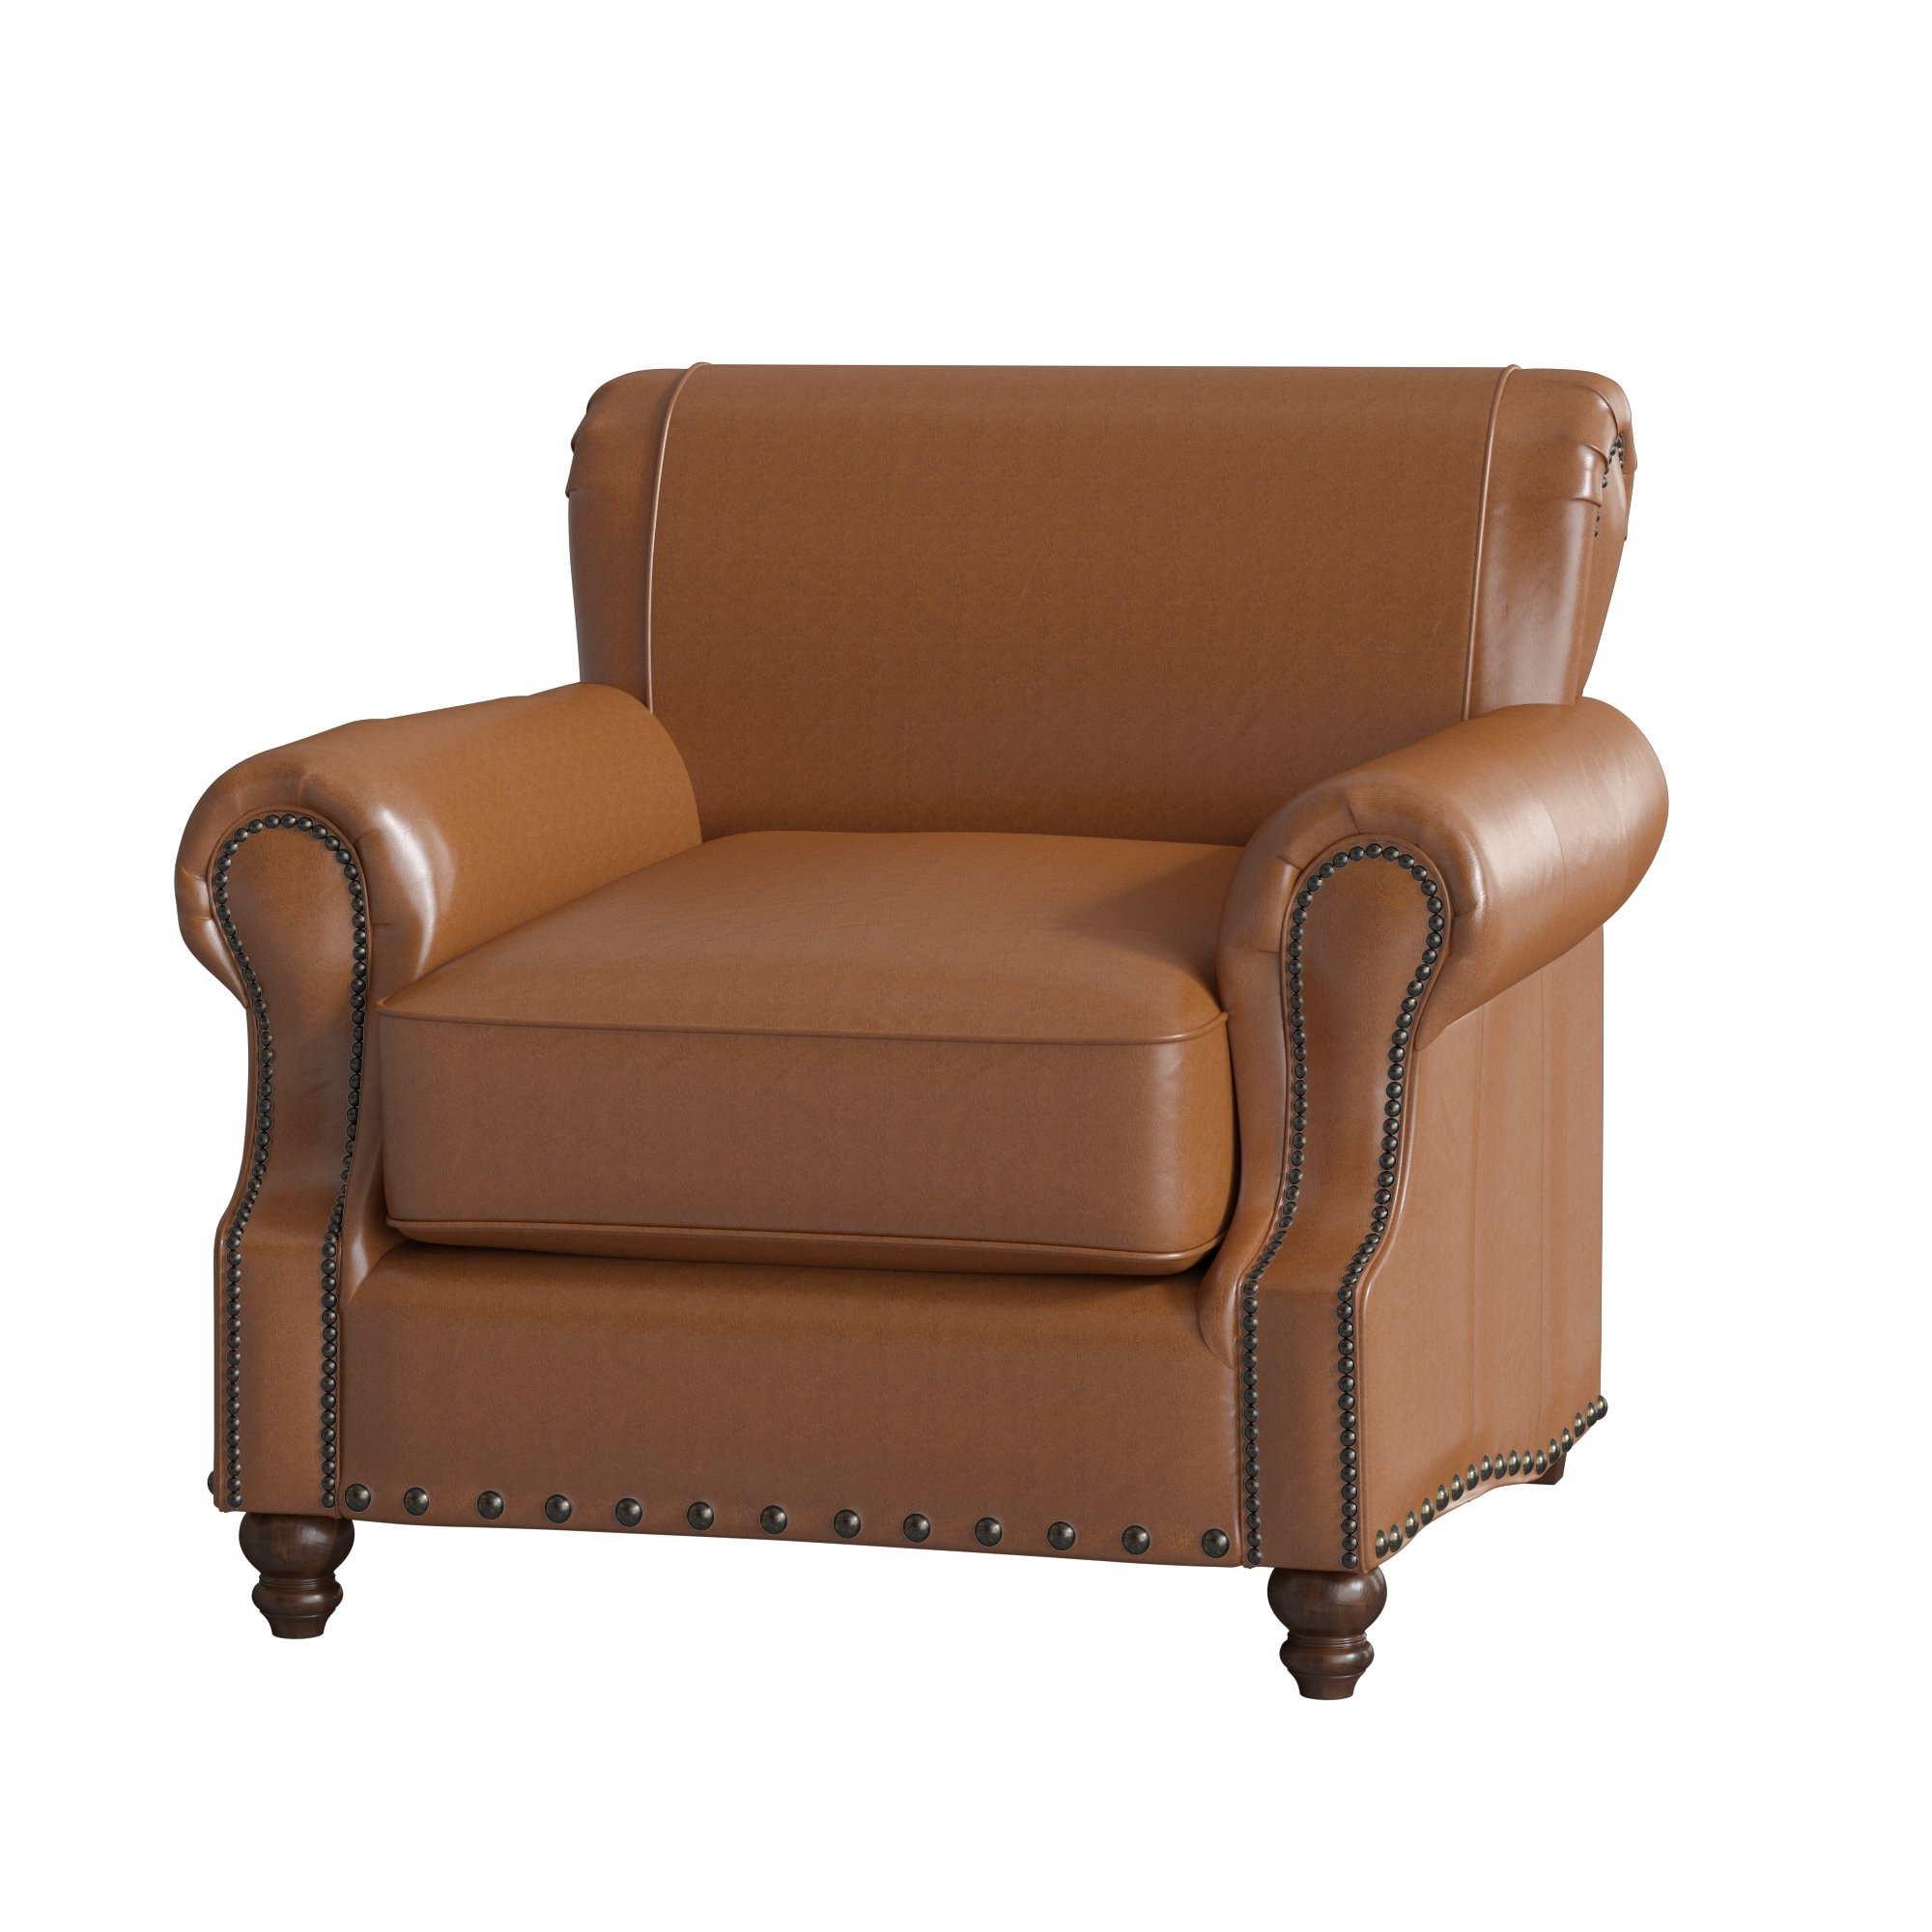 Widely Used Landry Sofa Chairs With Regard To Birch Lane™ Heritage Landry Club Chair & Reviews (View 20 of 20)